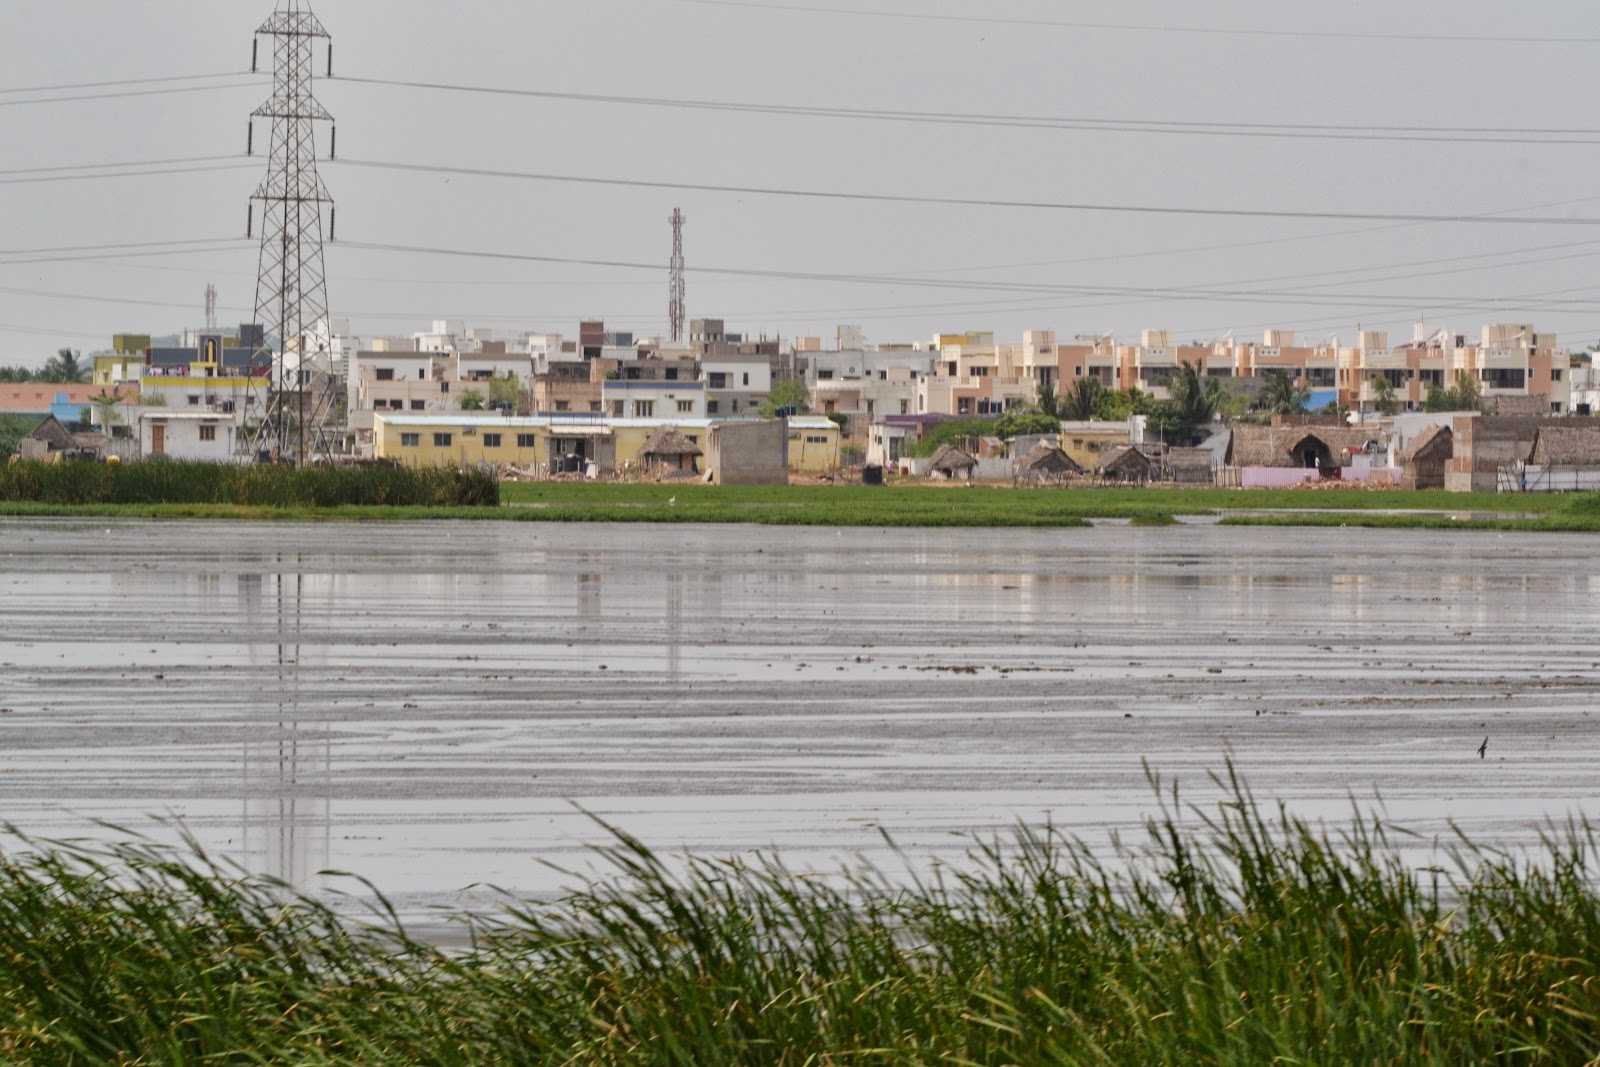 City in the background of Pallikaranai wetland